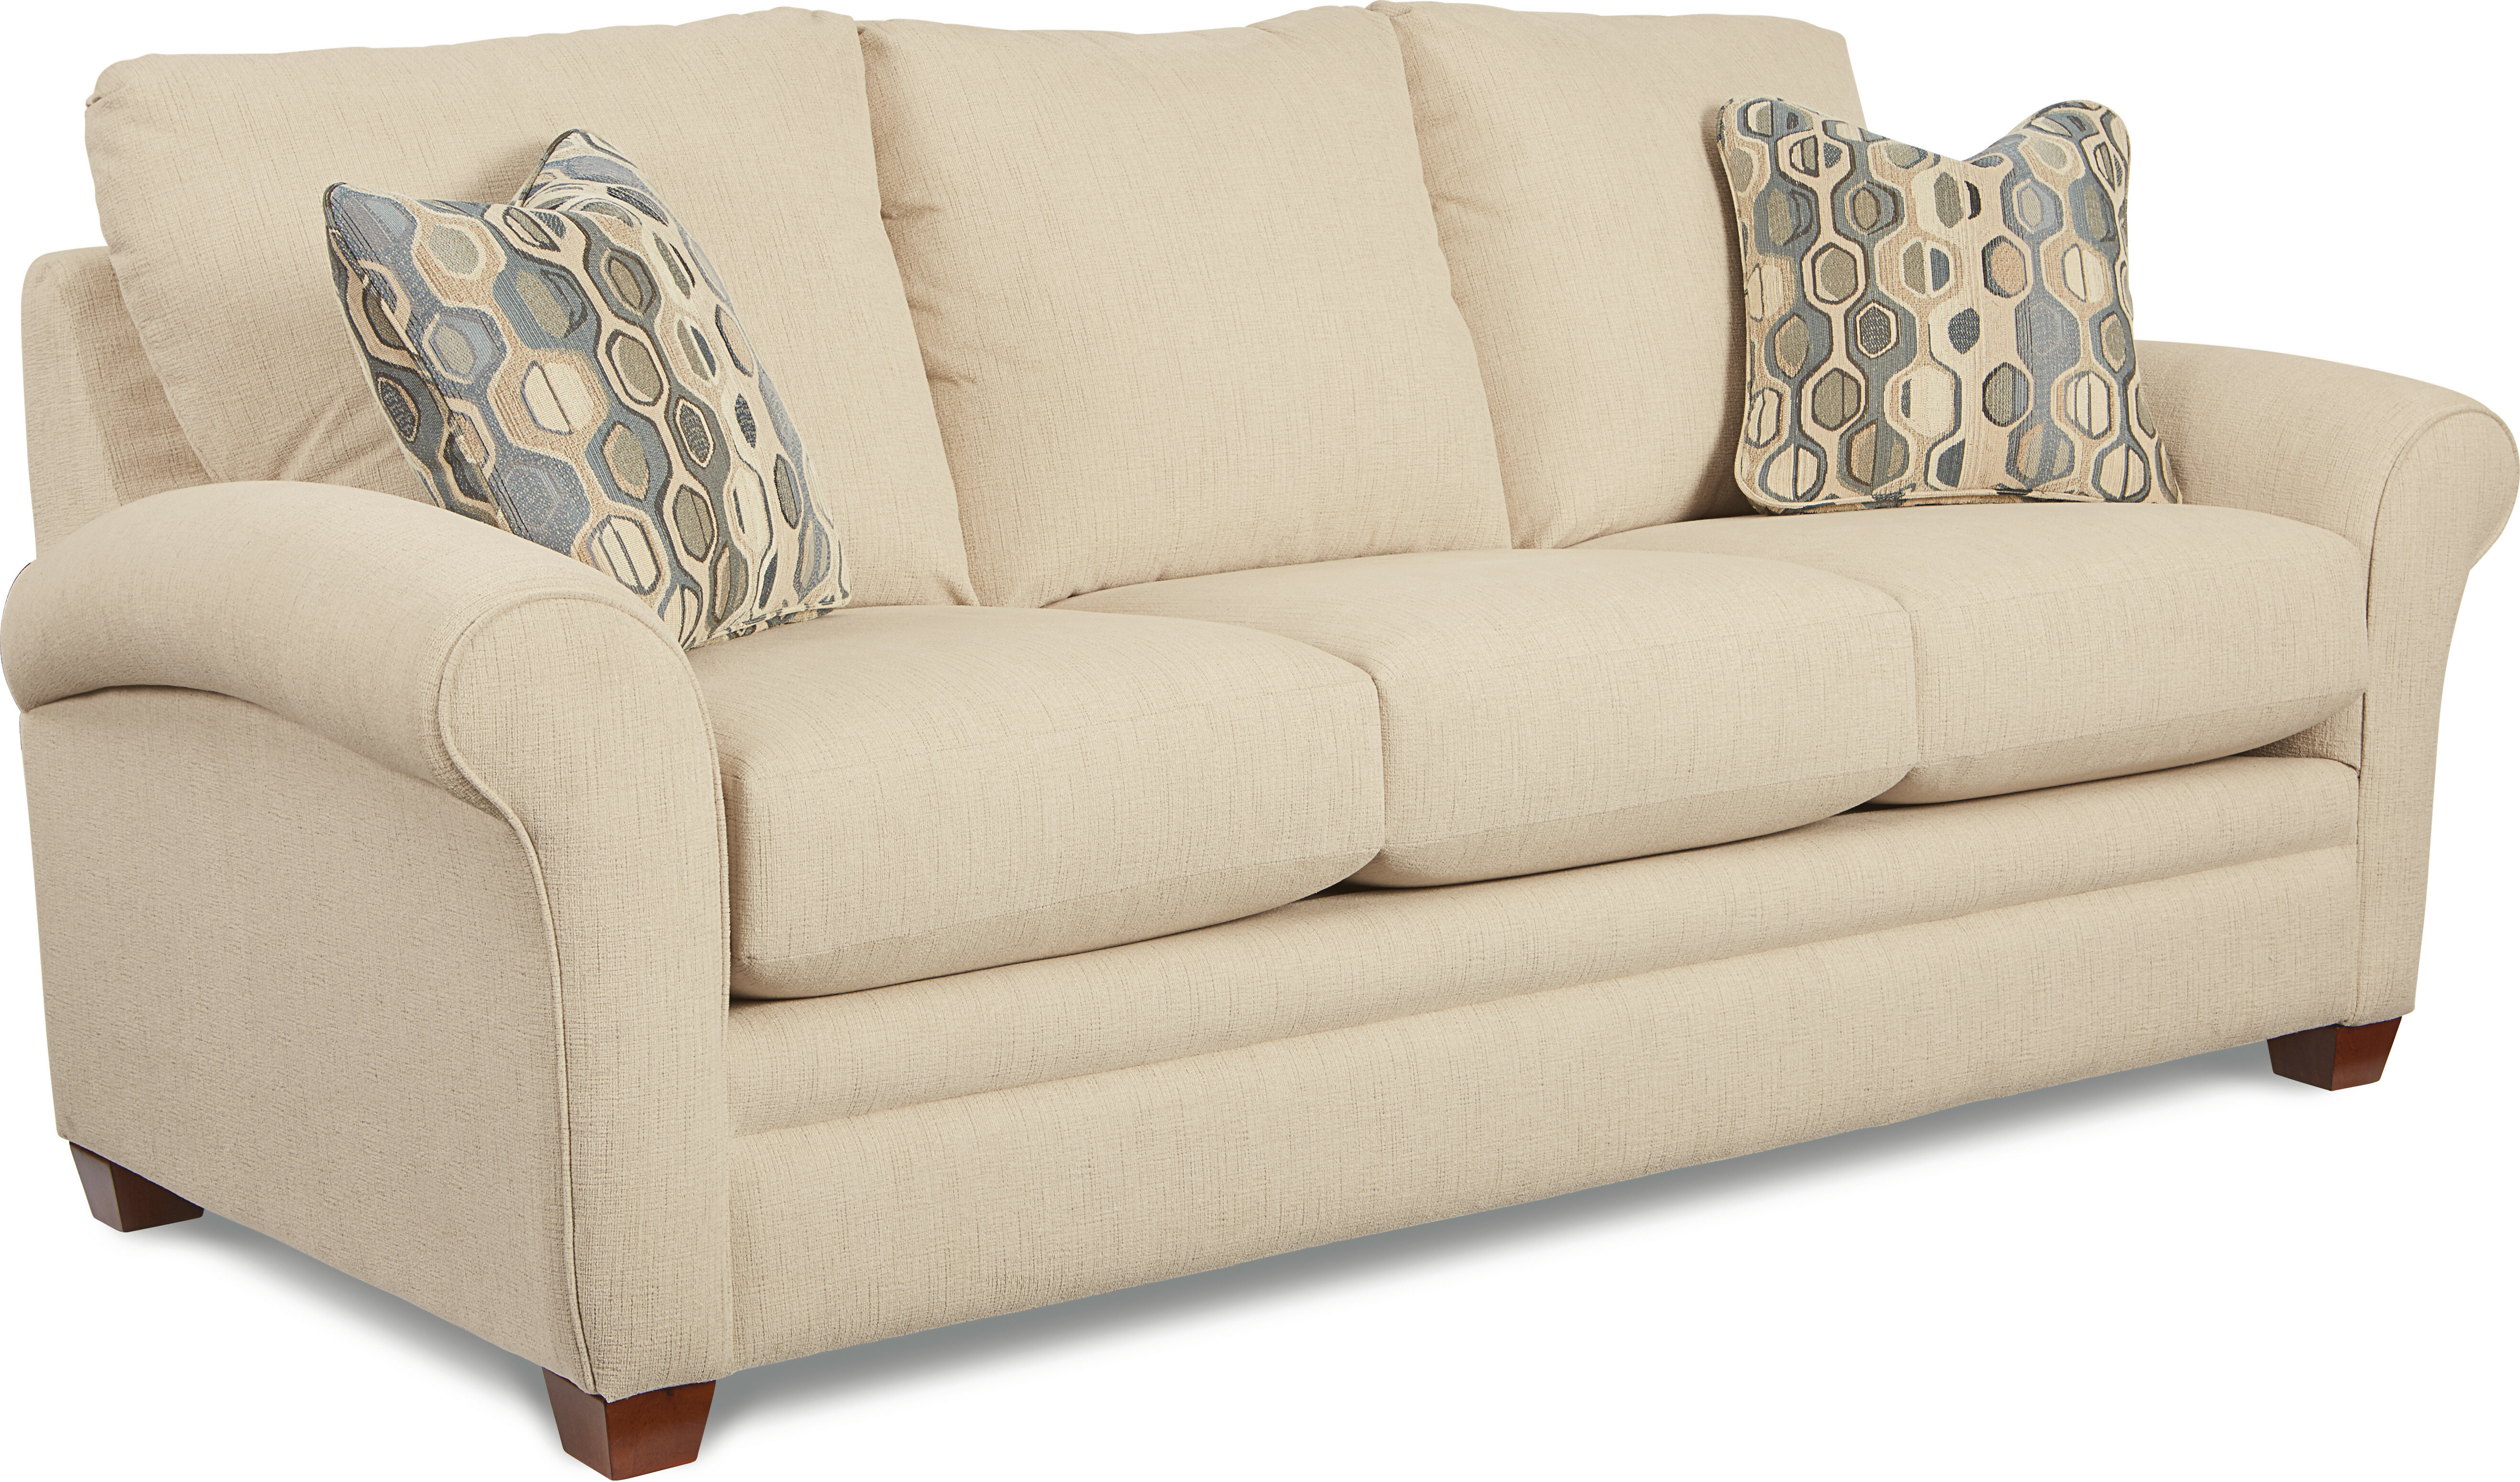 Picture of: La Z Boy Natalie Sofa Bed 86 Round Arm Sleeper Reviews